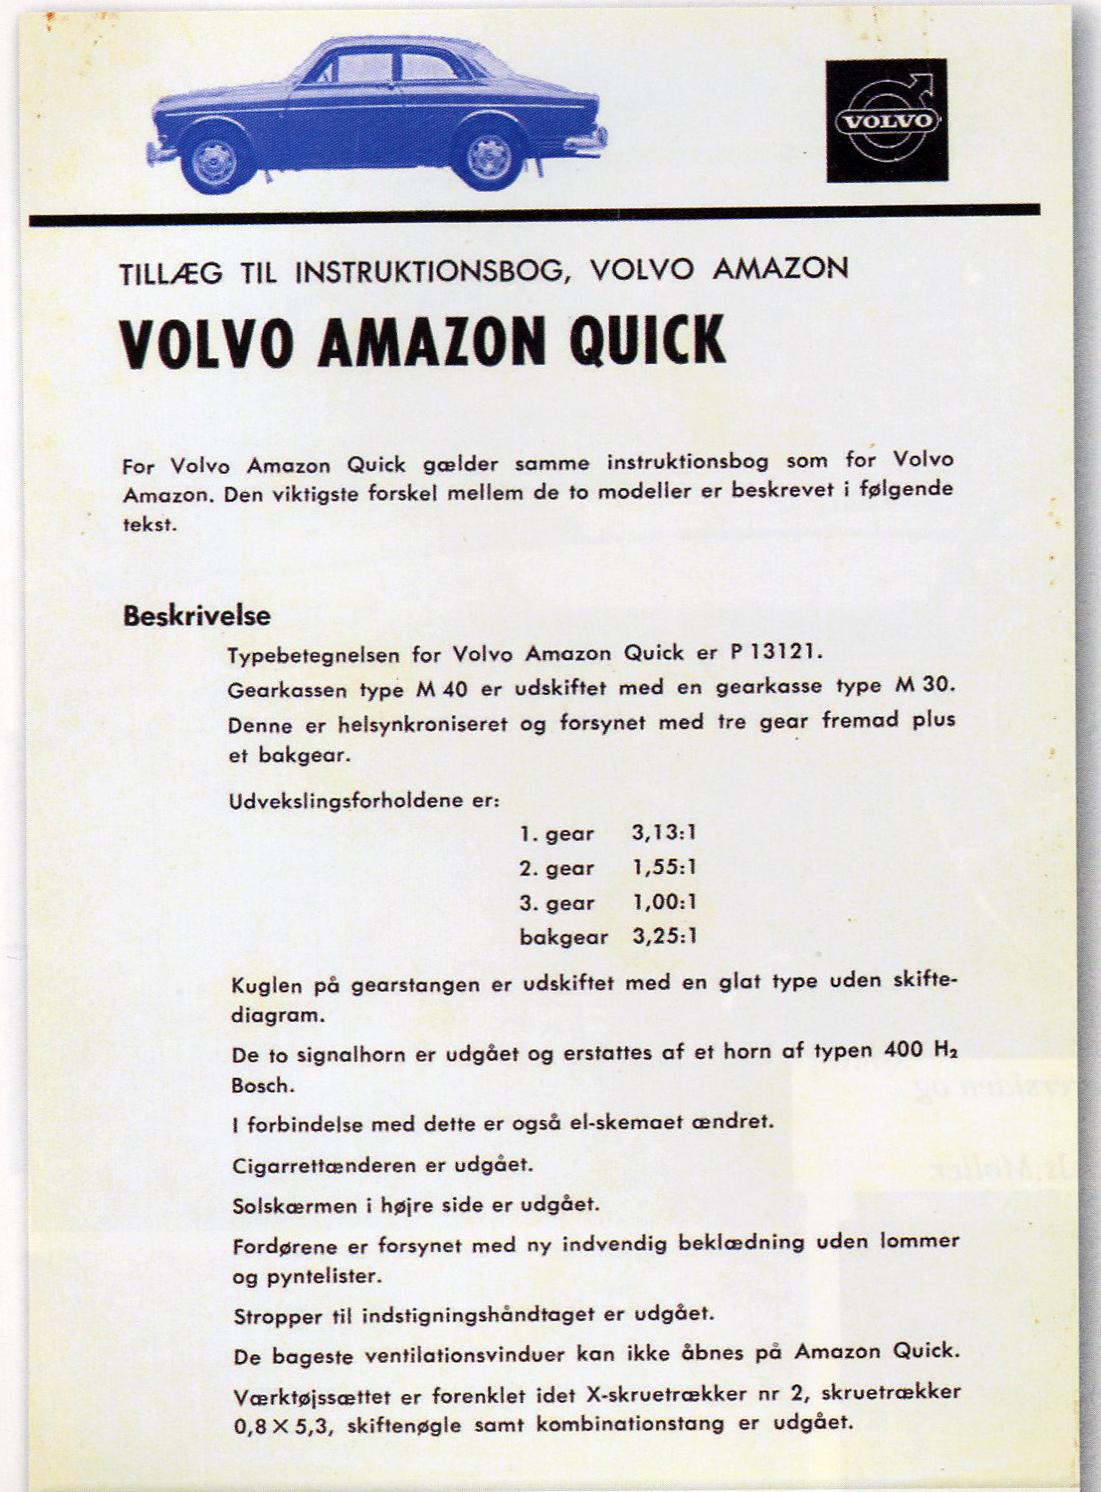 ... Tudor becomes sole battery supplier for the Volvo Amazon starting with  P 120 ch.-no. 218496 and P 220 ch.-no. 30832 ++